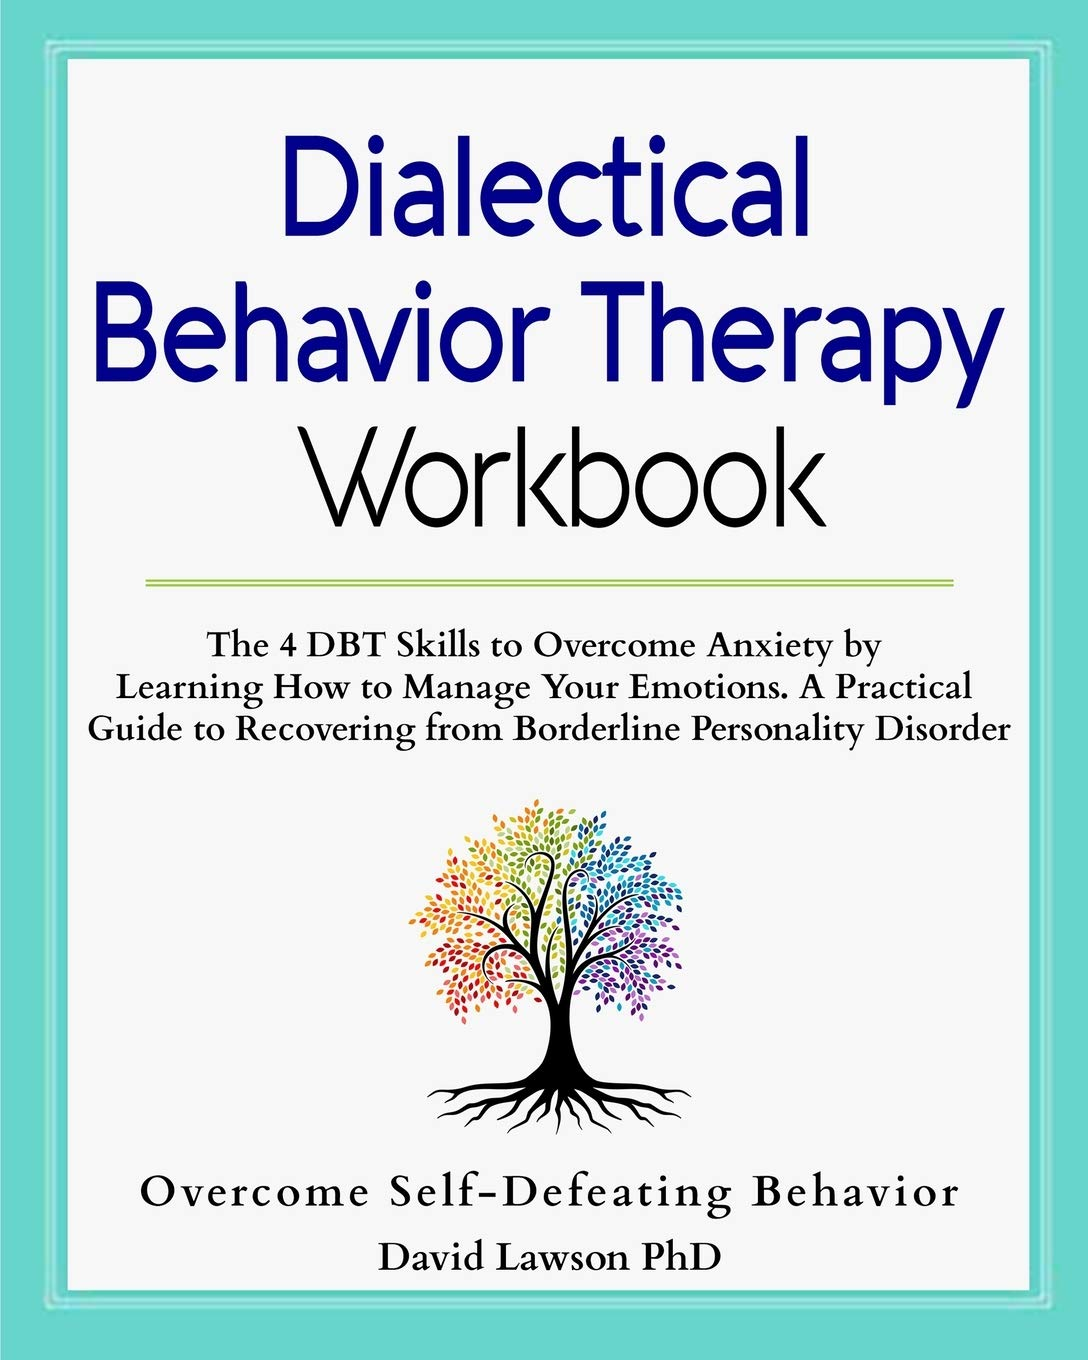 Dialectical Behavior Therapy Workbook  The 4 DBT Skills To Overcome Anxiety By Learning How To Manage Your Emotions. A Practical Guide To Recovering From Borderline Personality Disorder